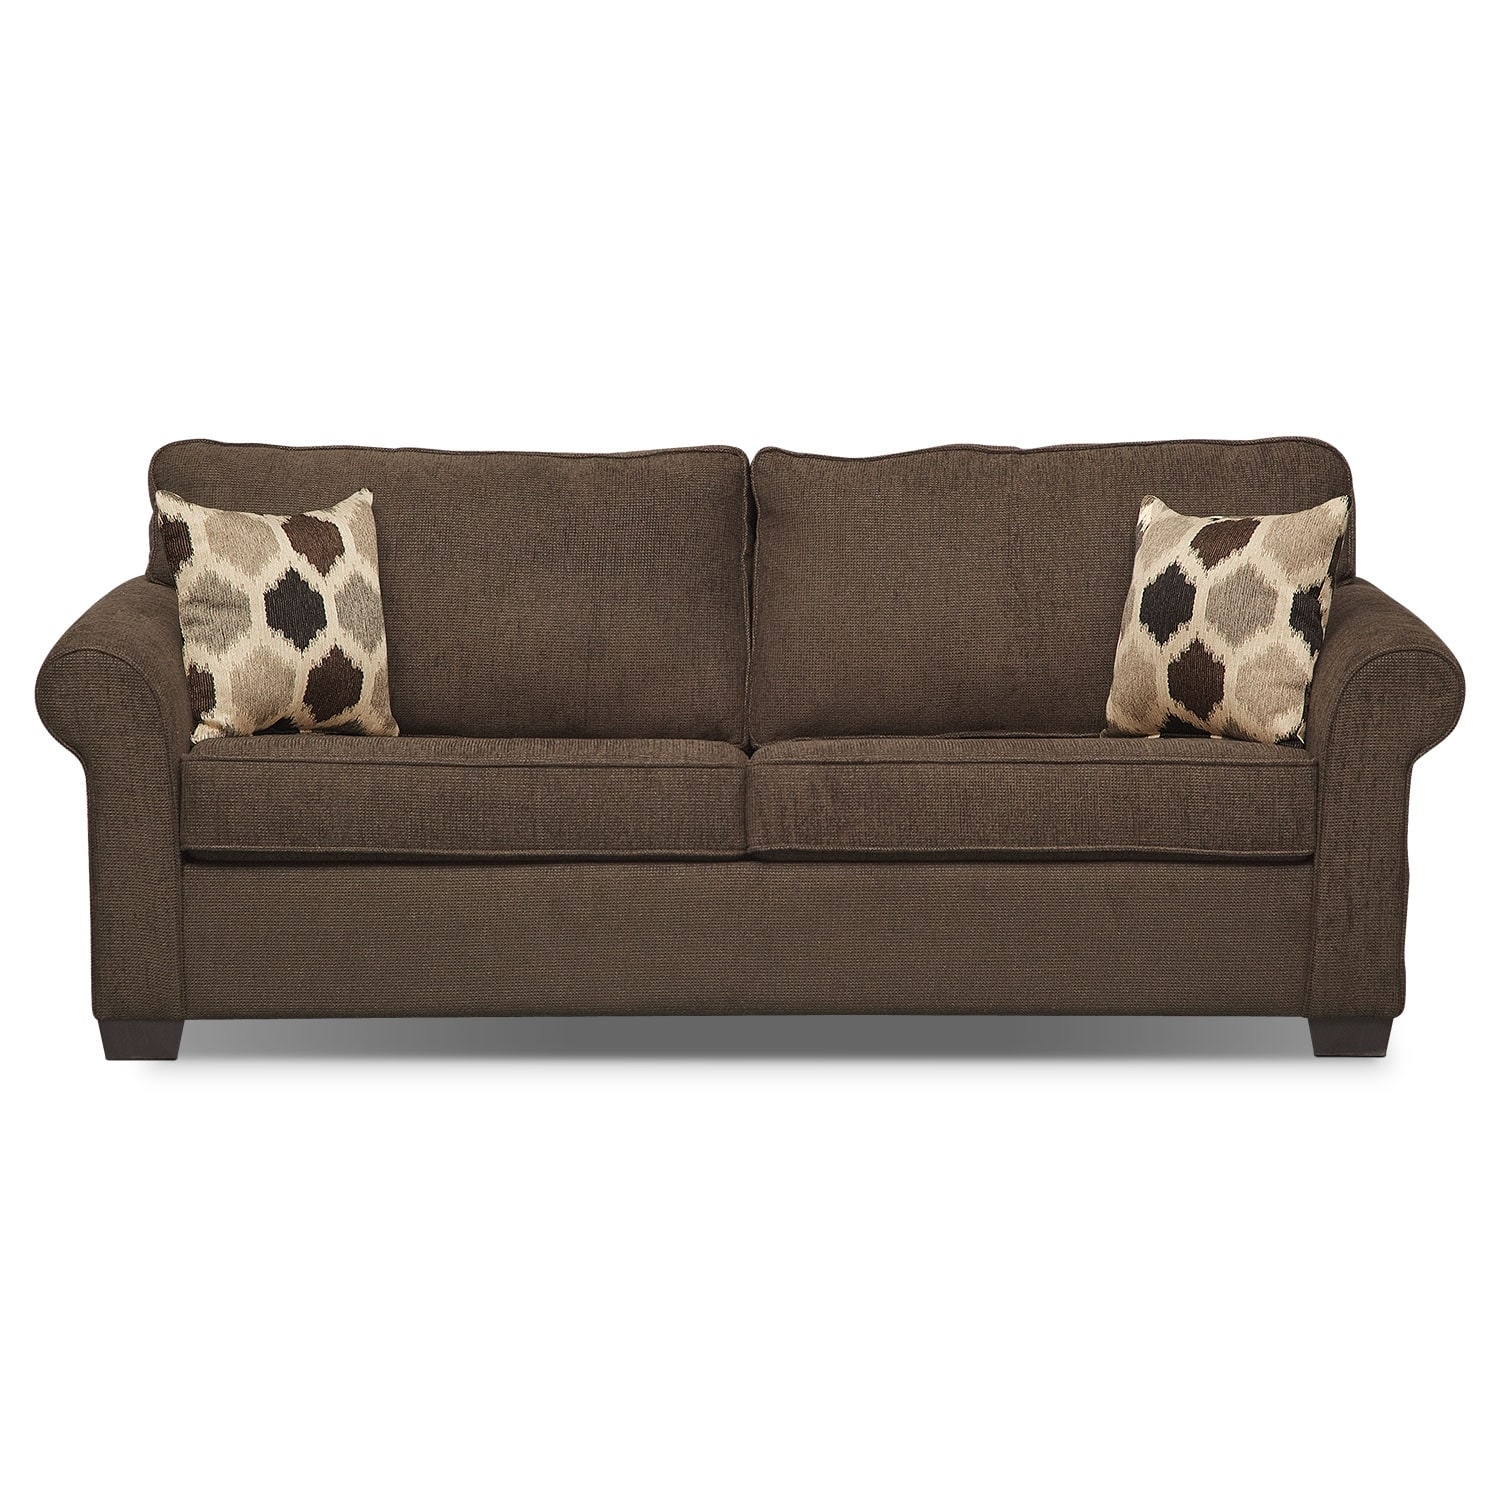 Fletcher Ii Queen Memory Foam Sleeper Sofa American